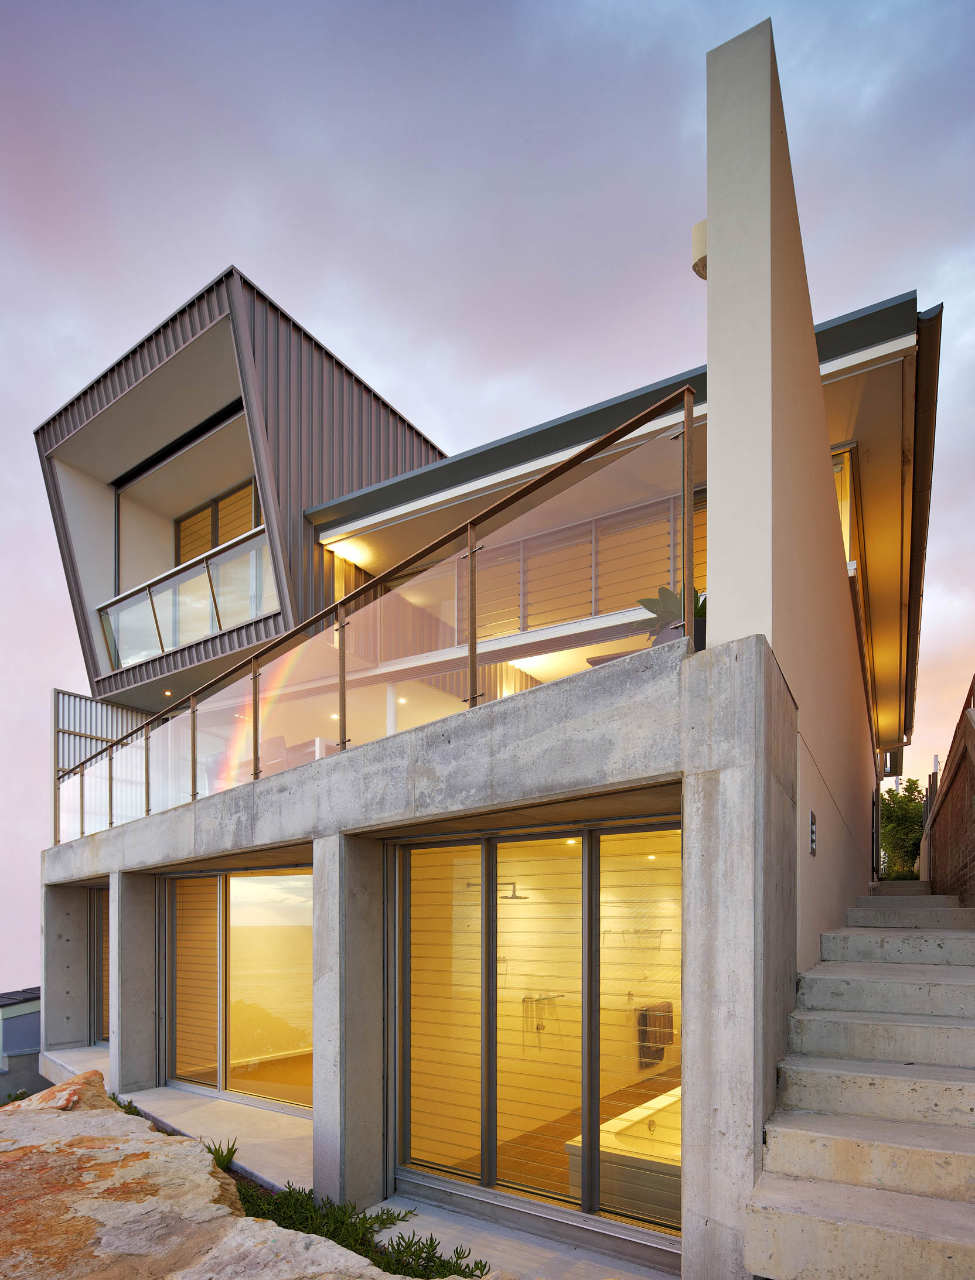 Queenscliff House / Utz Sanby Architects, © Marian Riabic